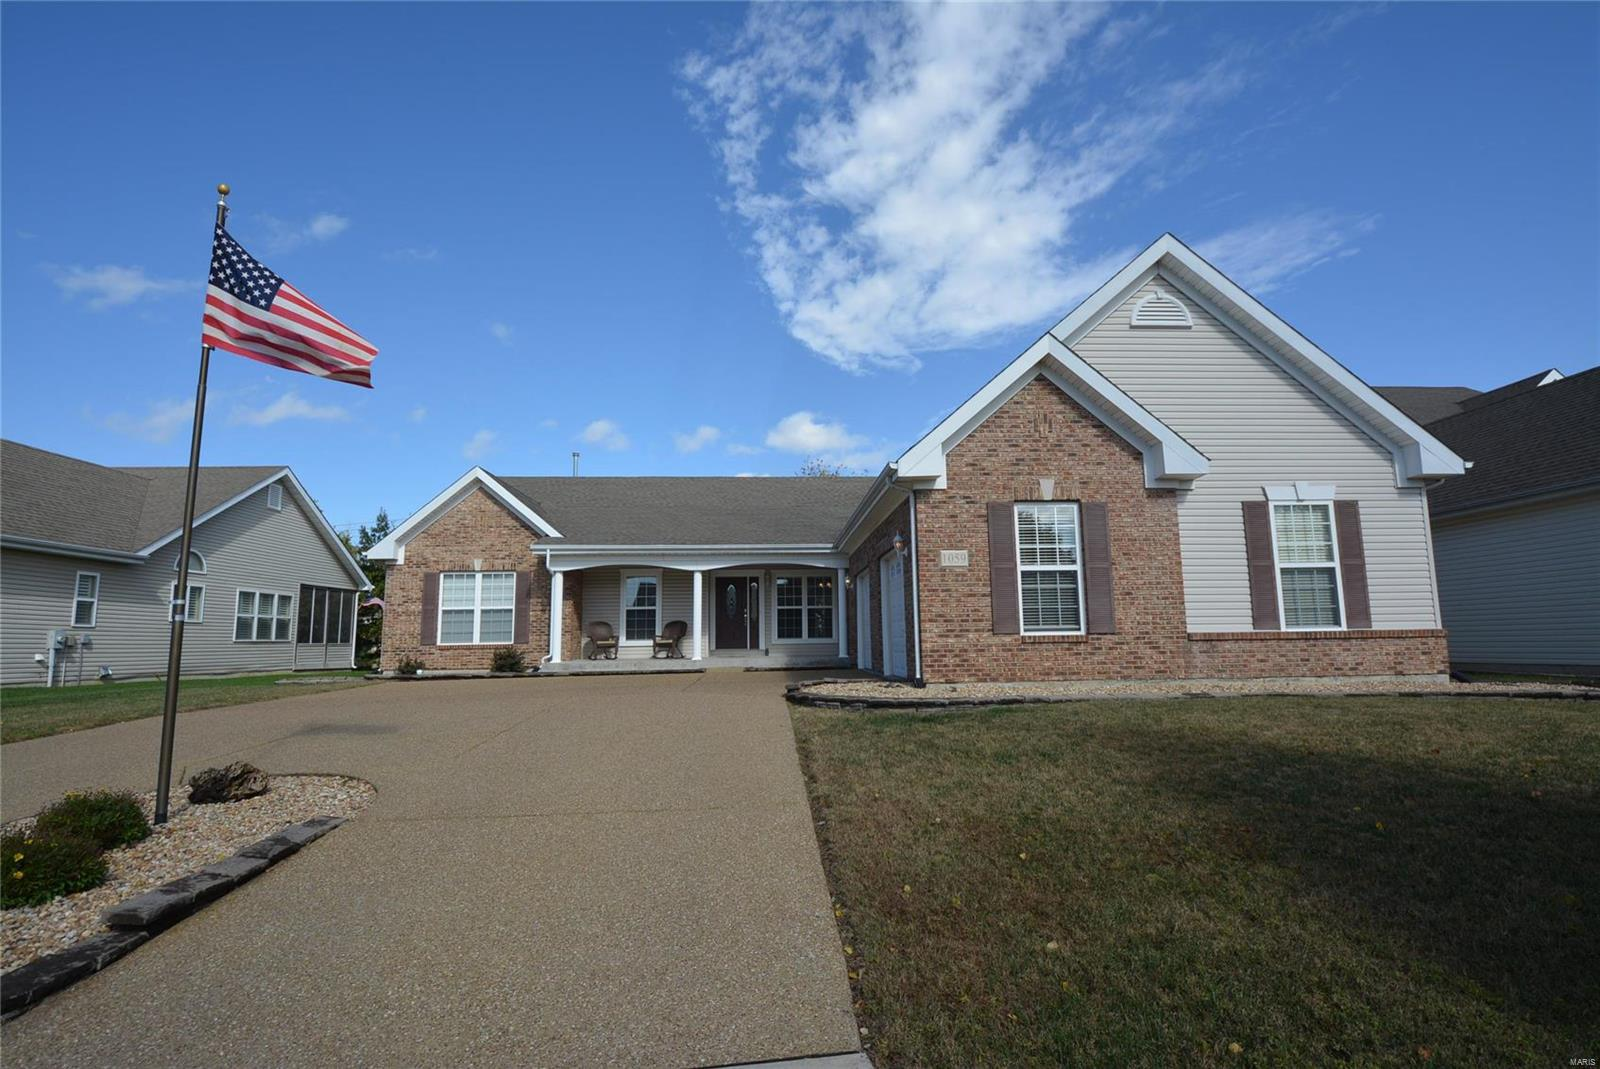 "WELCOME HOME to this 3BR, 2BTH, 2,228 SF ranch floor plan. Foyer opens to vaulted great rm w/gas FP & Casablanca ceiling fan. Laminate/vinyl/Carpet flooring throughout. 9 Ft ceilings. Kitchen features 42"" raised wood cabinets. Huge bkft bar island, new stainless steel appliances & pantry. Main floor master suite w/walk-in closet. Master BTH includes his/her adult height vanities, adult height toilet, tub & separate shower. 2 add'l main floor BR & full BTH. One bedroom off the foyer currently used as office & has double French doors. Main floor laundry/mud room w/large closet & cabinets. Tons of shelving in lower lvl w/rough in for bth. Fenced, secluded backyard. aggregate courtyard entry driveway. 2 car insulated oversized garage is extra deep and wide w/insulated extra wide 9' garage doors. Architectural roof. Great location w/easy access to highways, shopping & schools. Fort Zumwalt School District. Possible owner financing. A MUST SEE!"